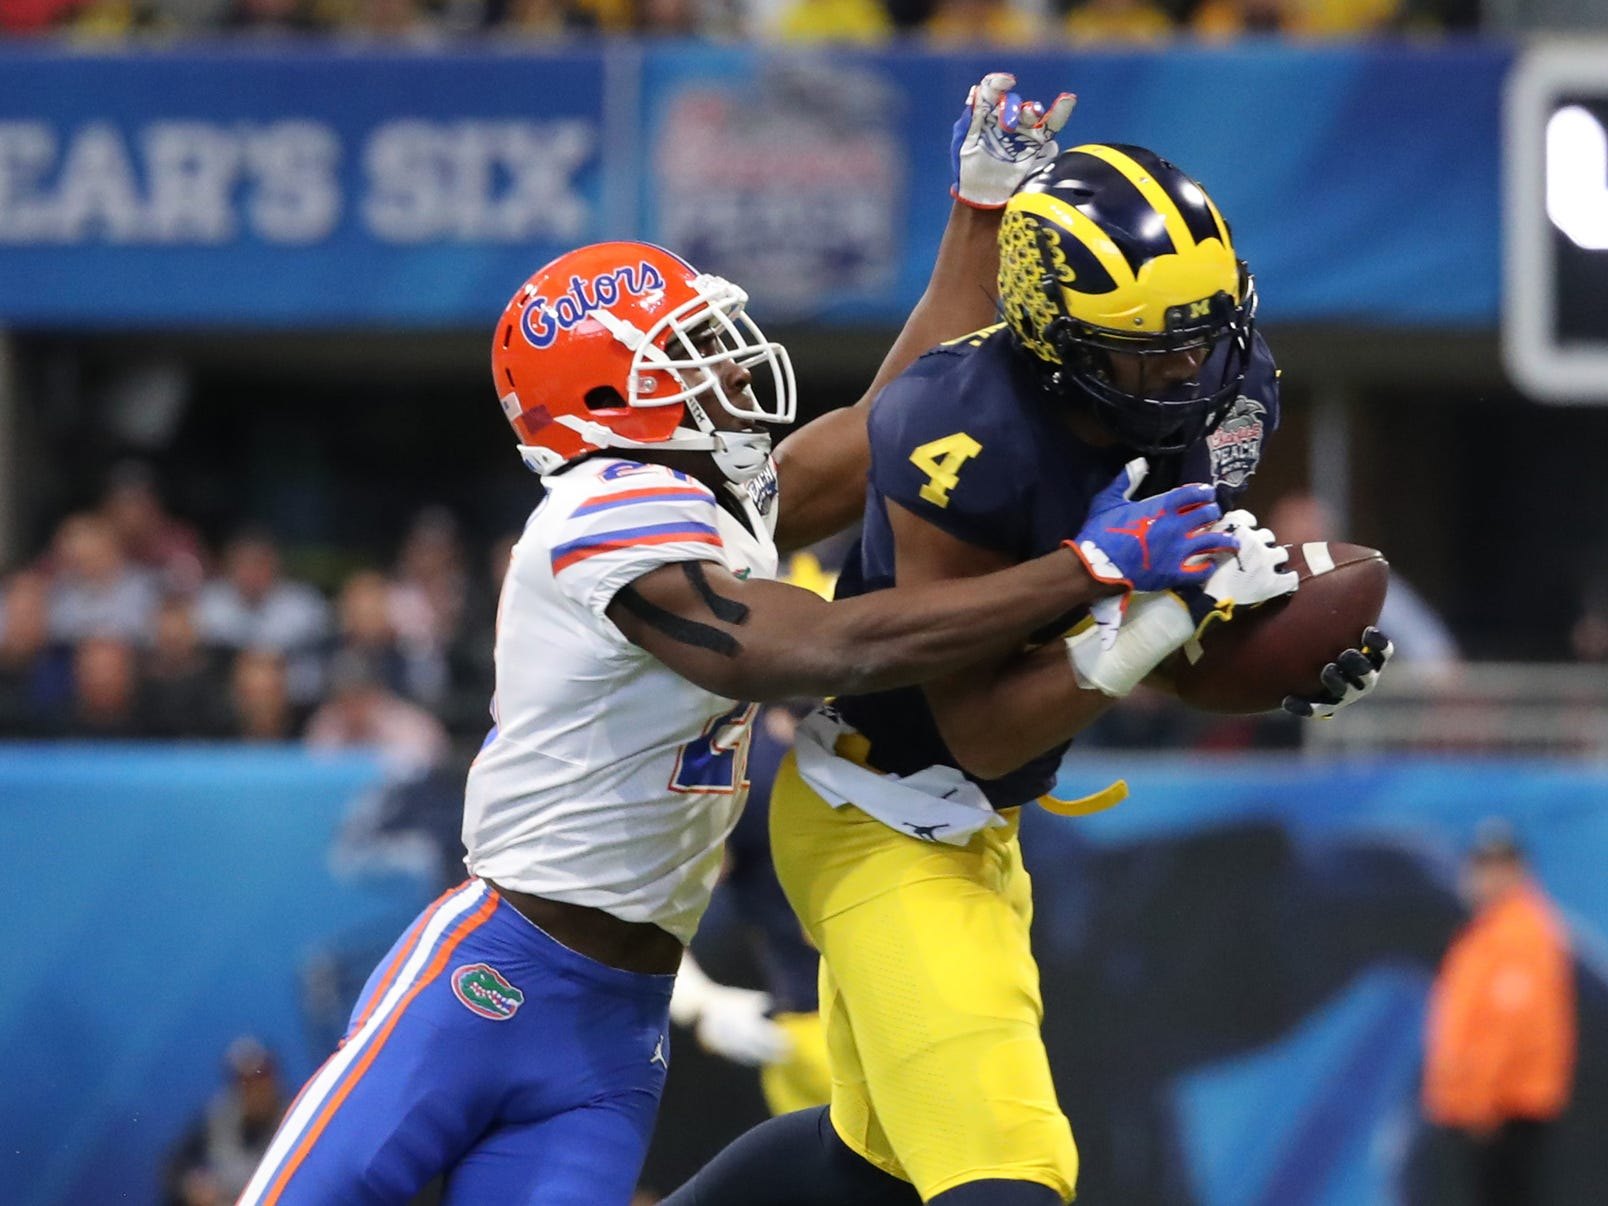 Michigan receiver Nico Collins makes a catch against Florida's Trey Dean III during the first half of the Peach Bowl on Saturday, Dec. 29, 2018, in Atlanta.